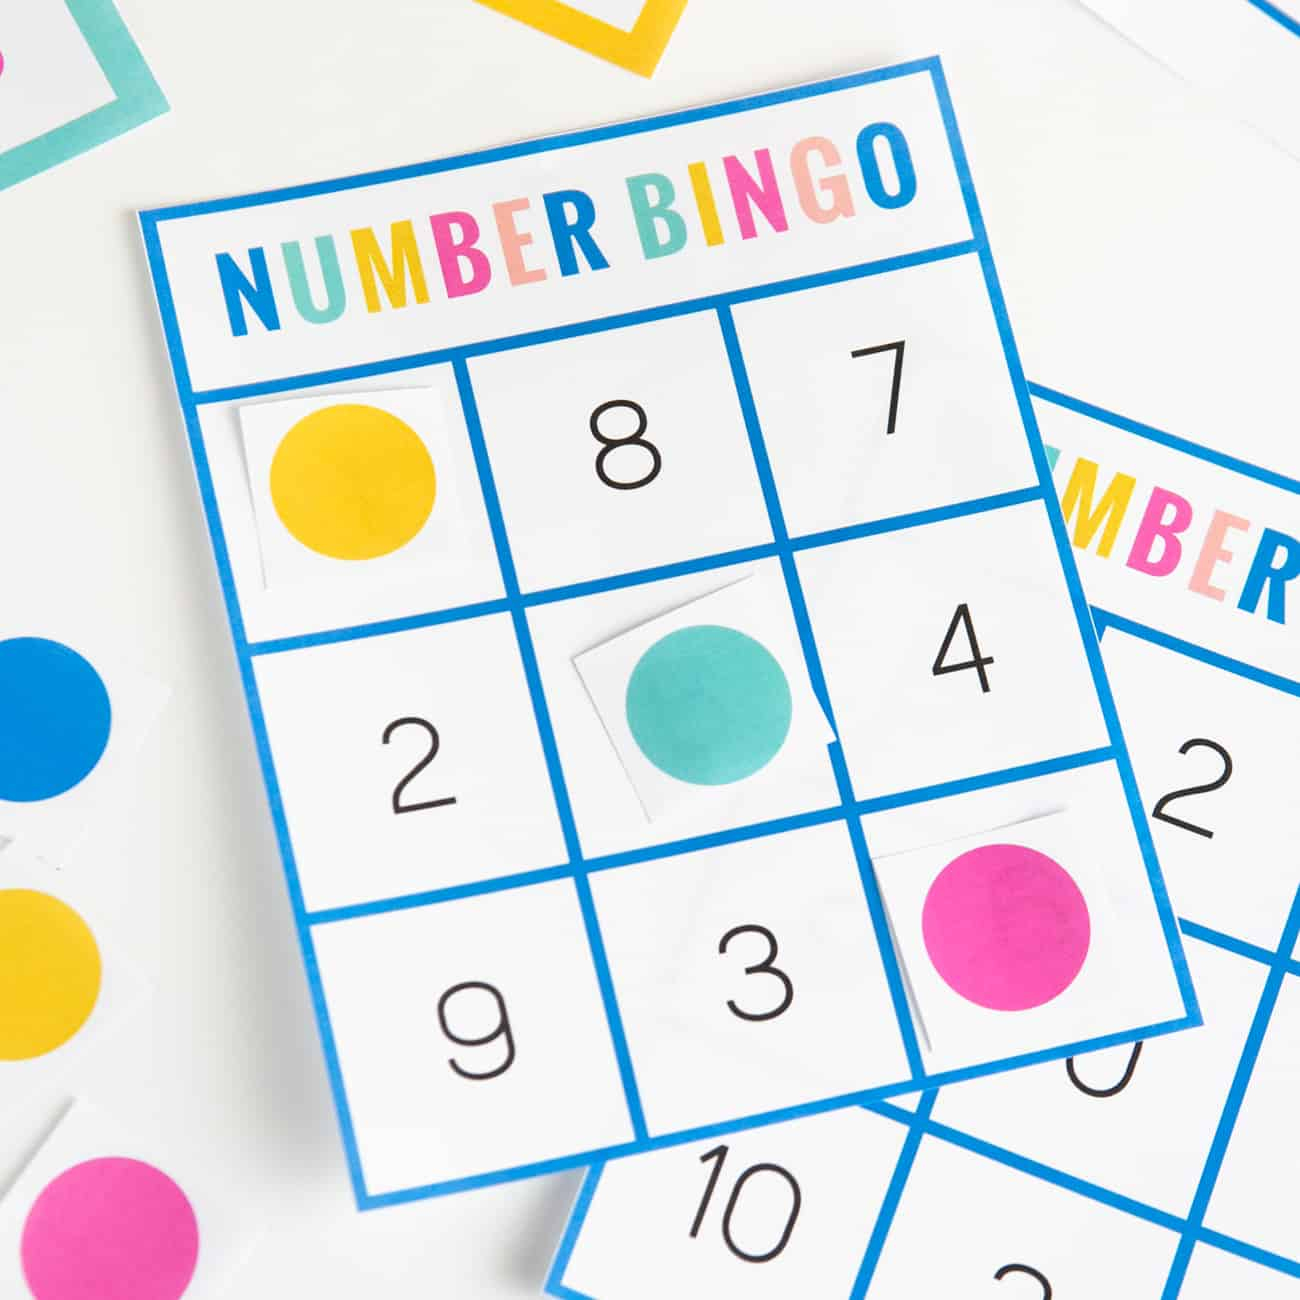 Free Printable Number Bingo - Design Eat Repeat